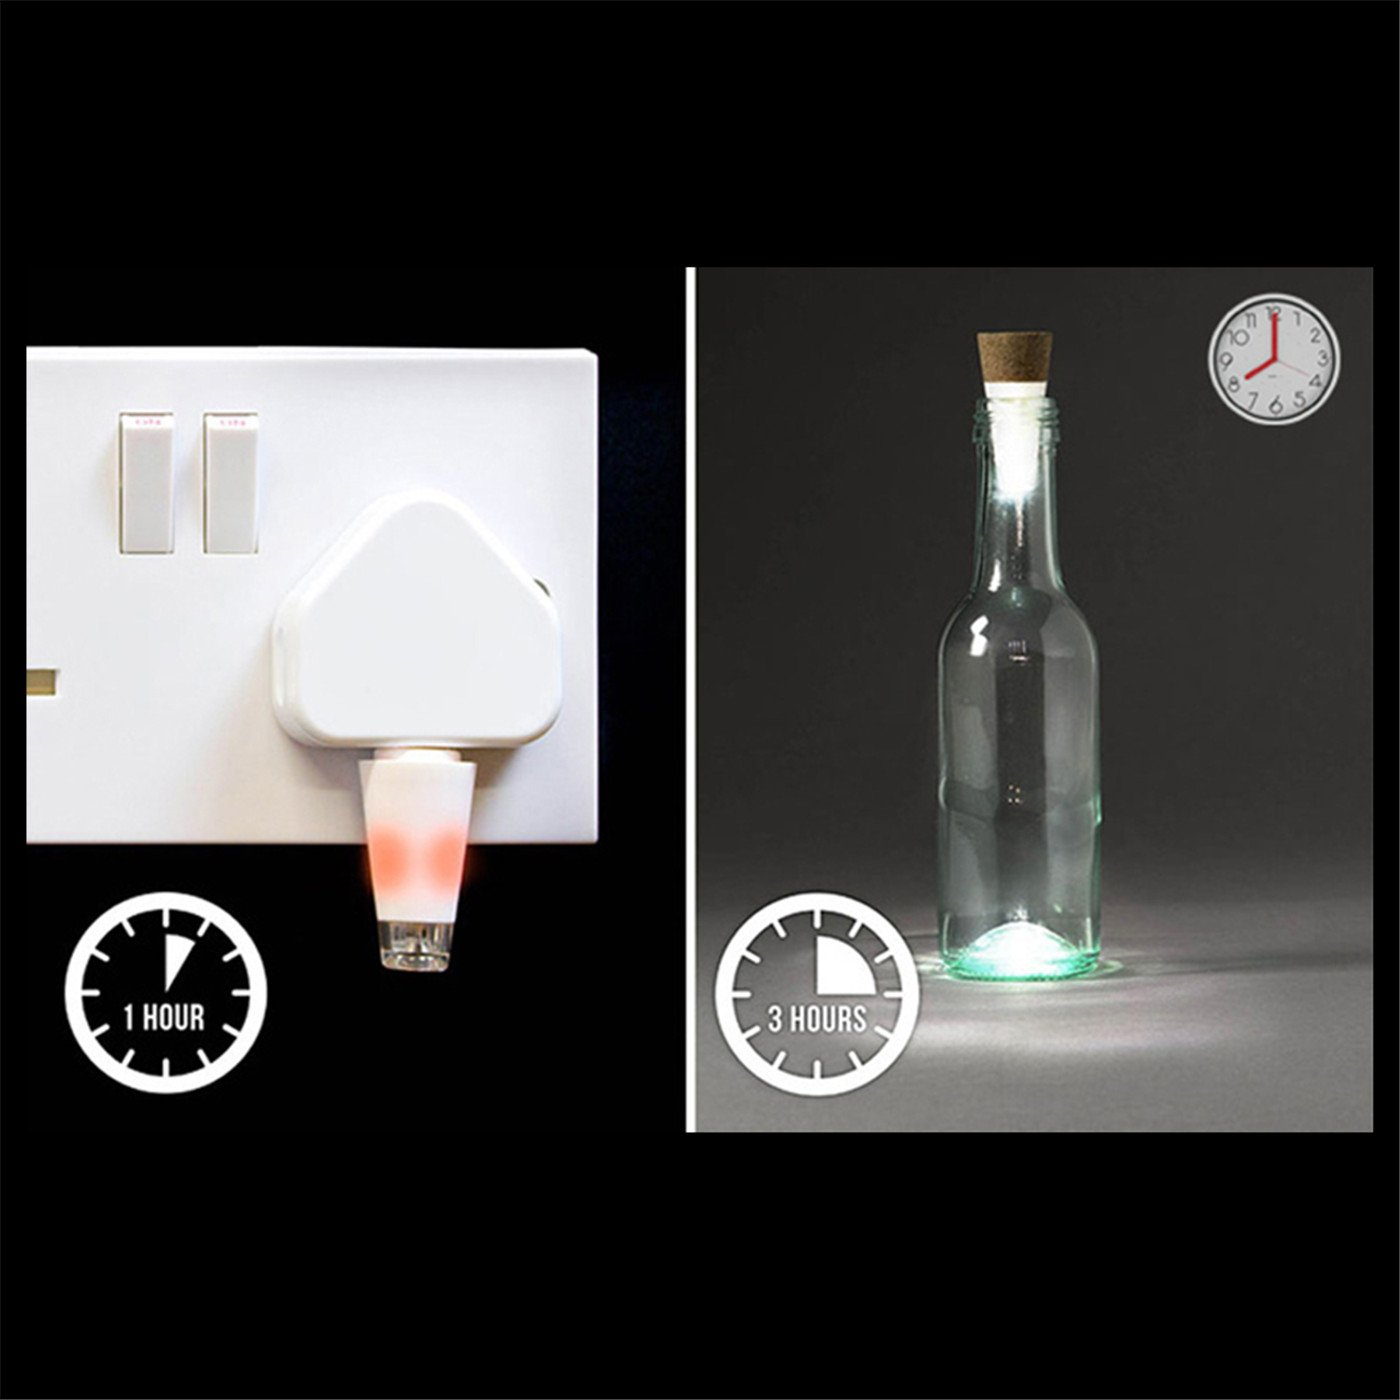 LED Cork Bottle Lights, USB Powered Rechargeable, 12 Lumen Mood Lights Copper Wire String Starry LED Lights for DIY, Home Kitchen, Wedding, Halloween, Christmas, Party Decor (3PCS White)